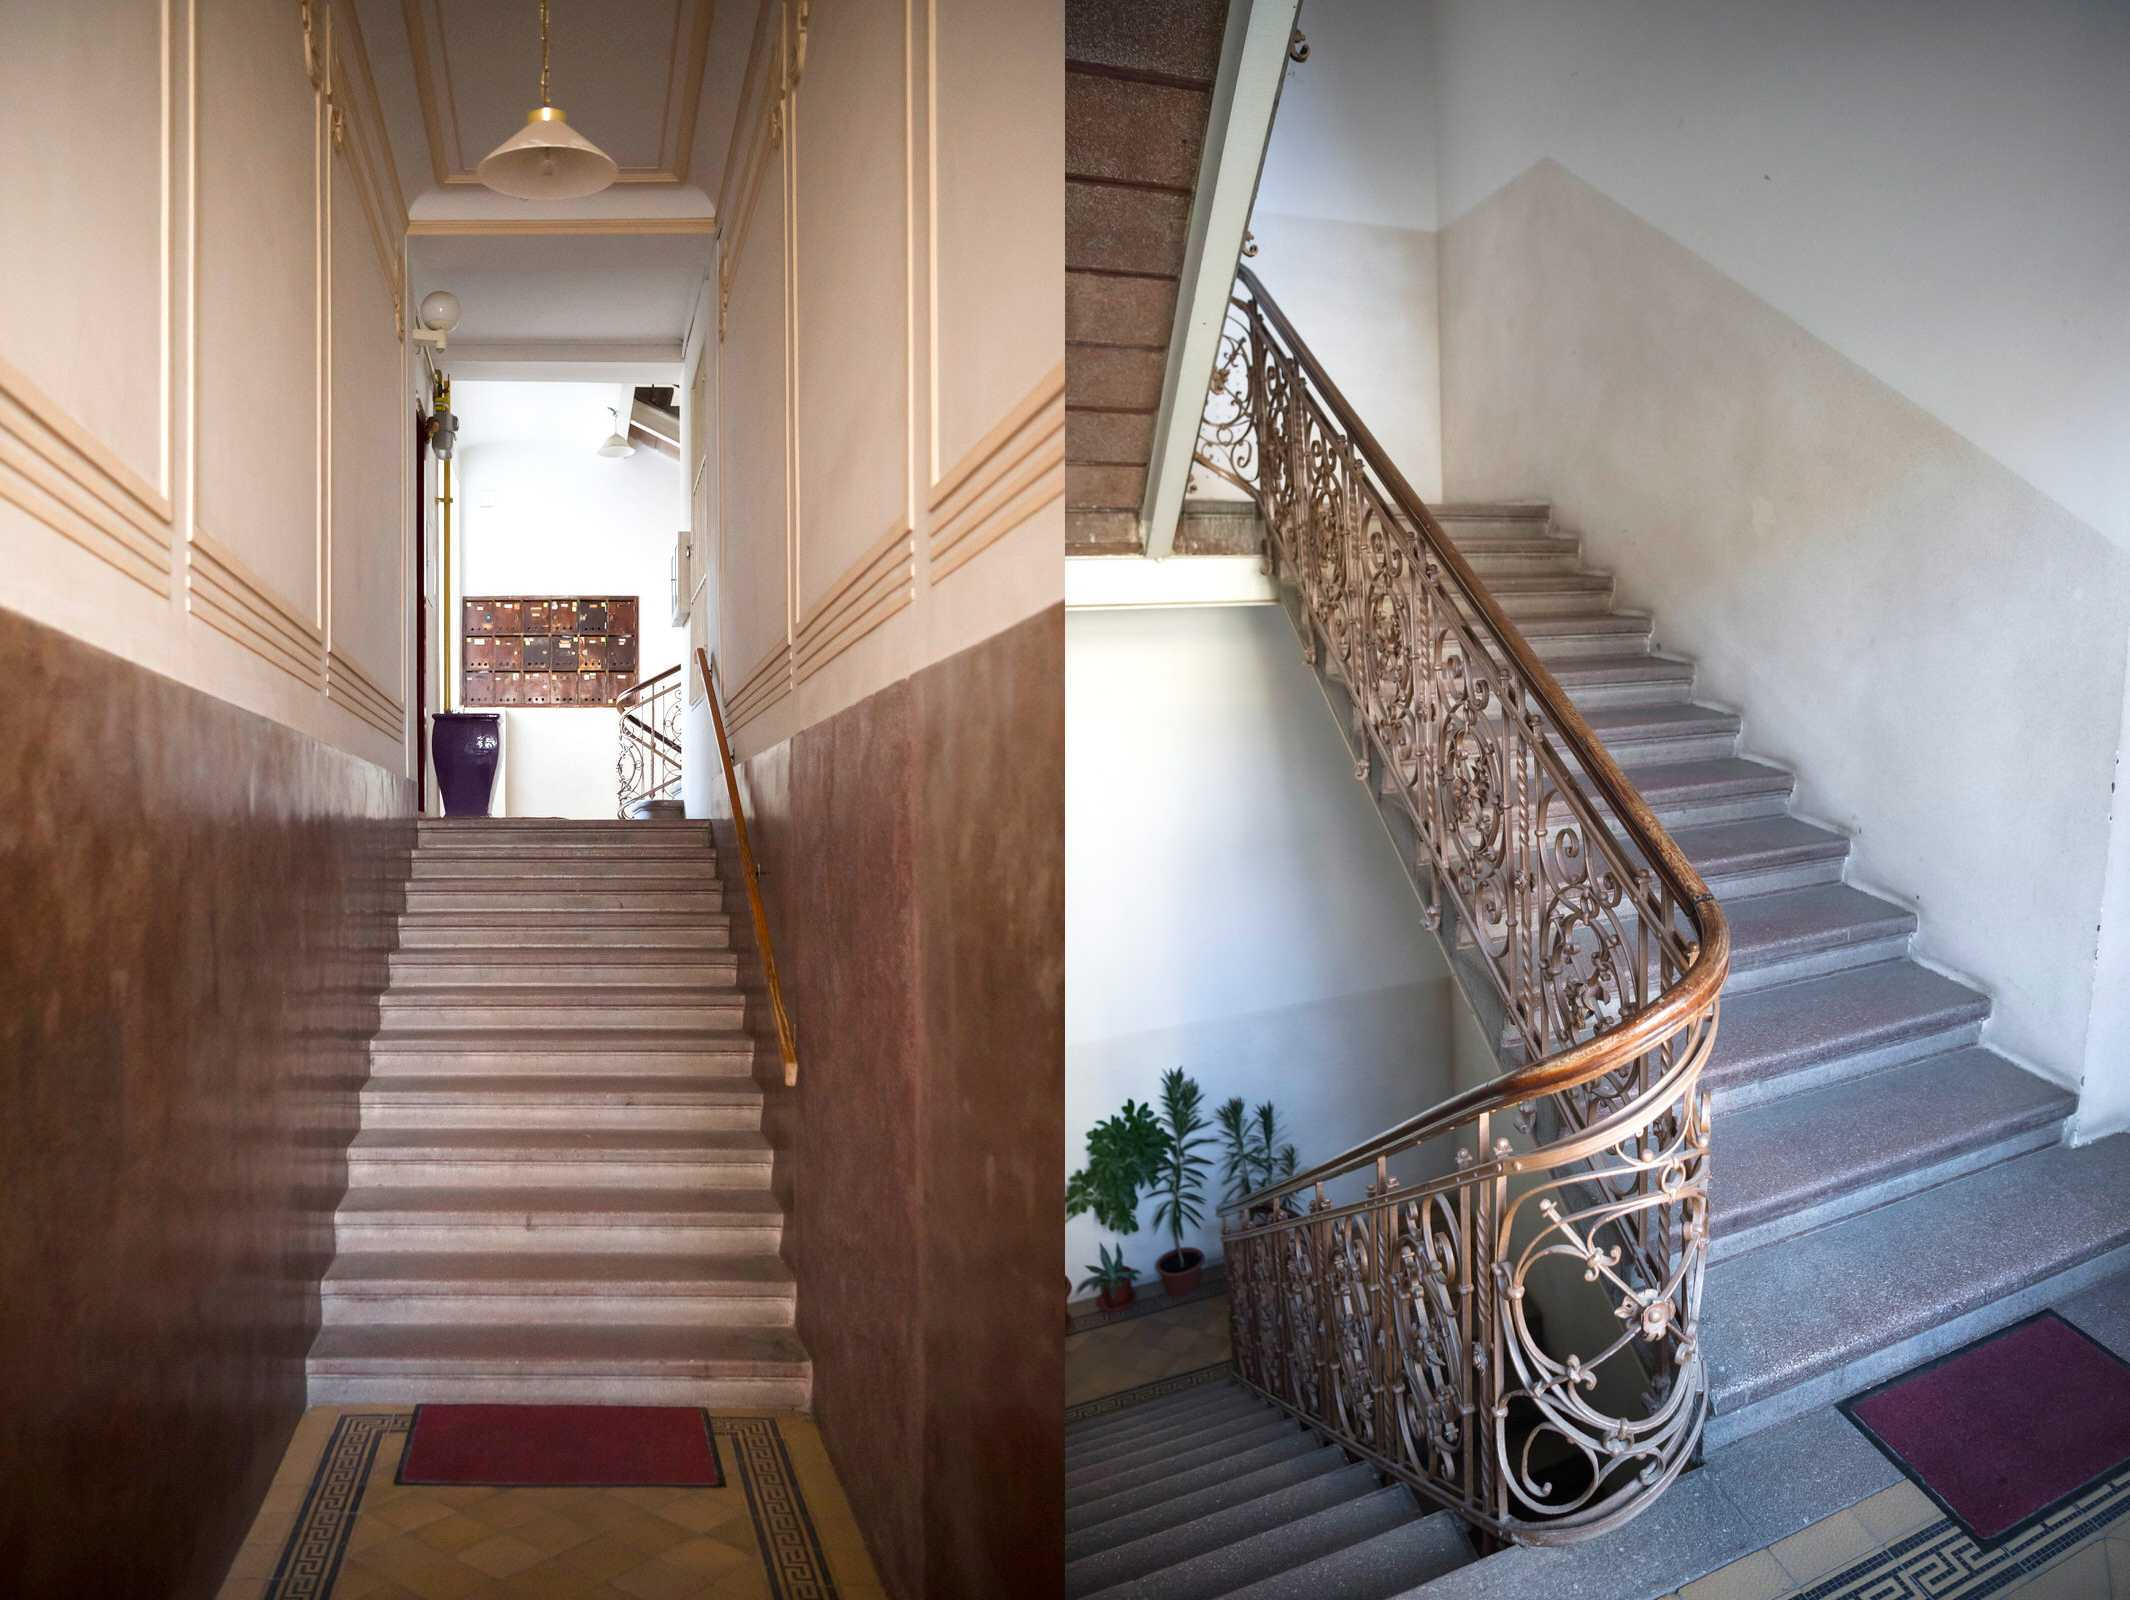 Big and spacious entrance to the building and vintage staircase leading to the apartment.